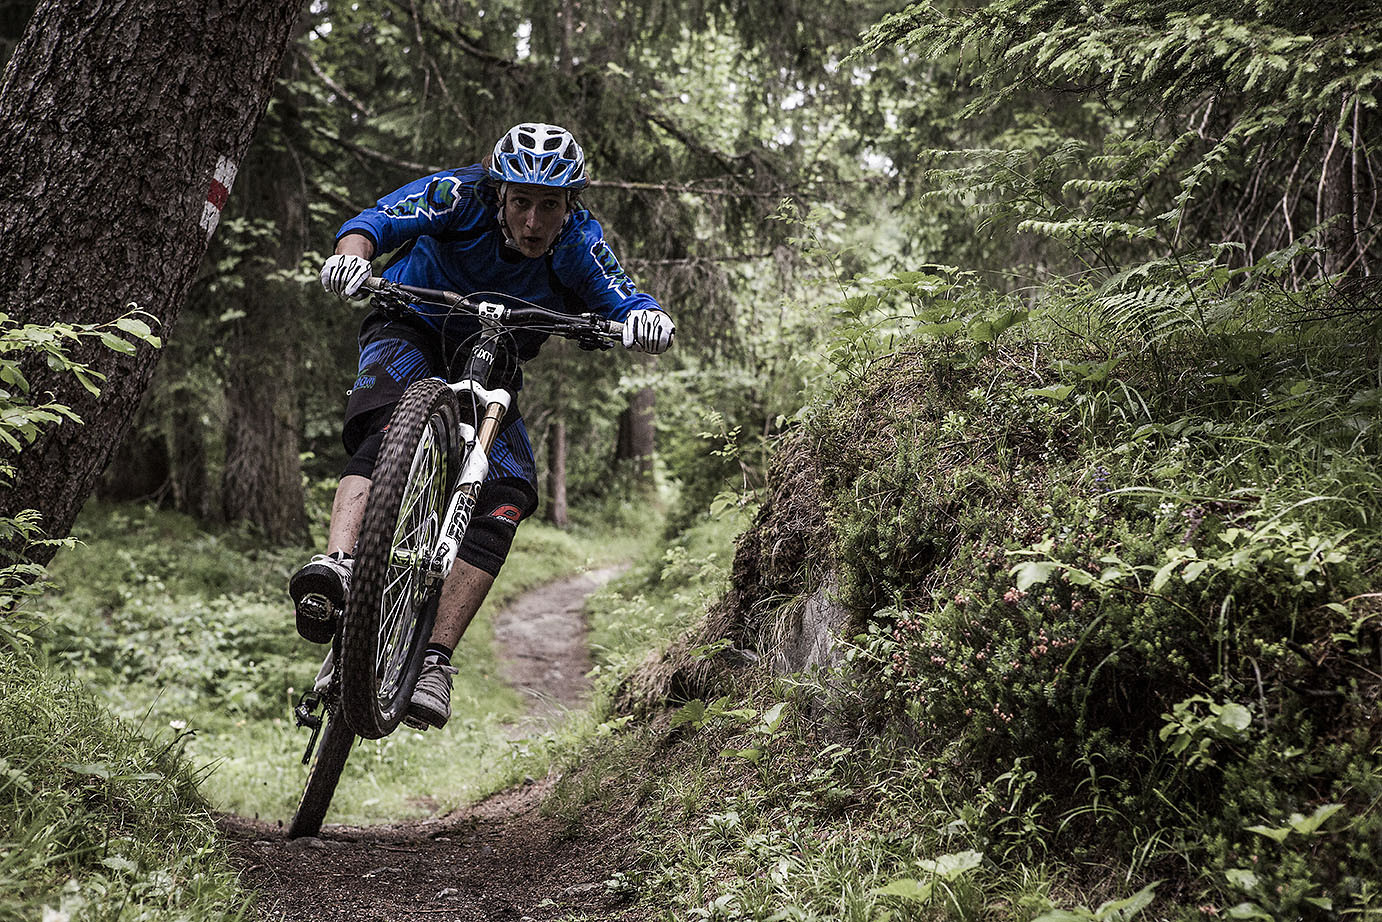 Ripping it Manual Style - Hannes Klausner - Mountain Biking Pictures - Vital MTB